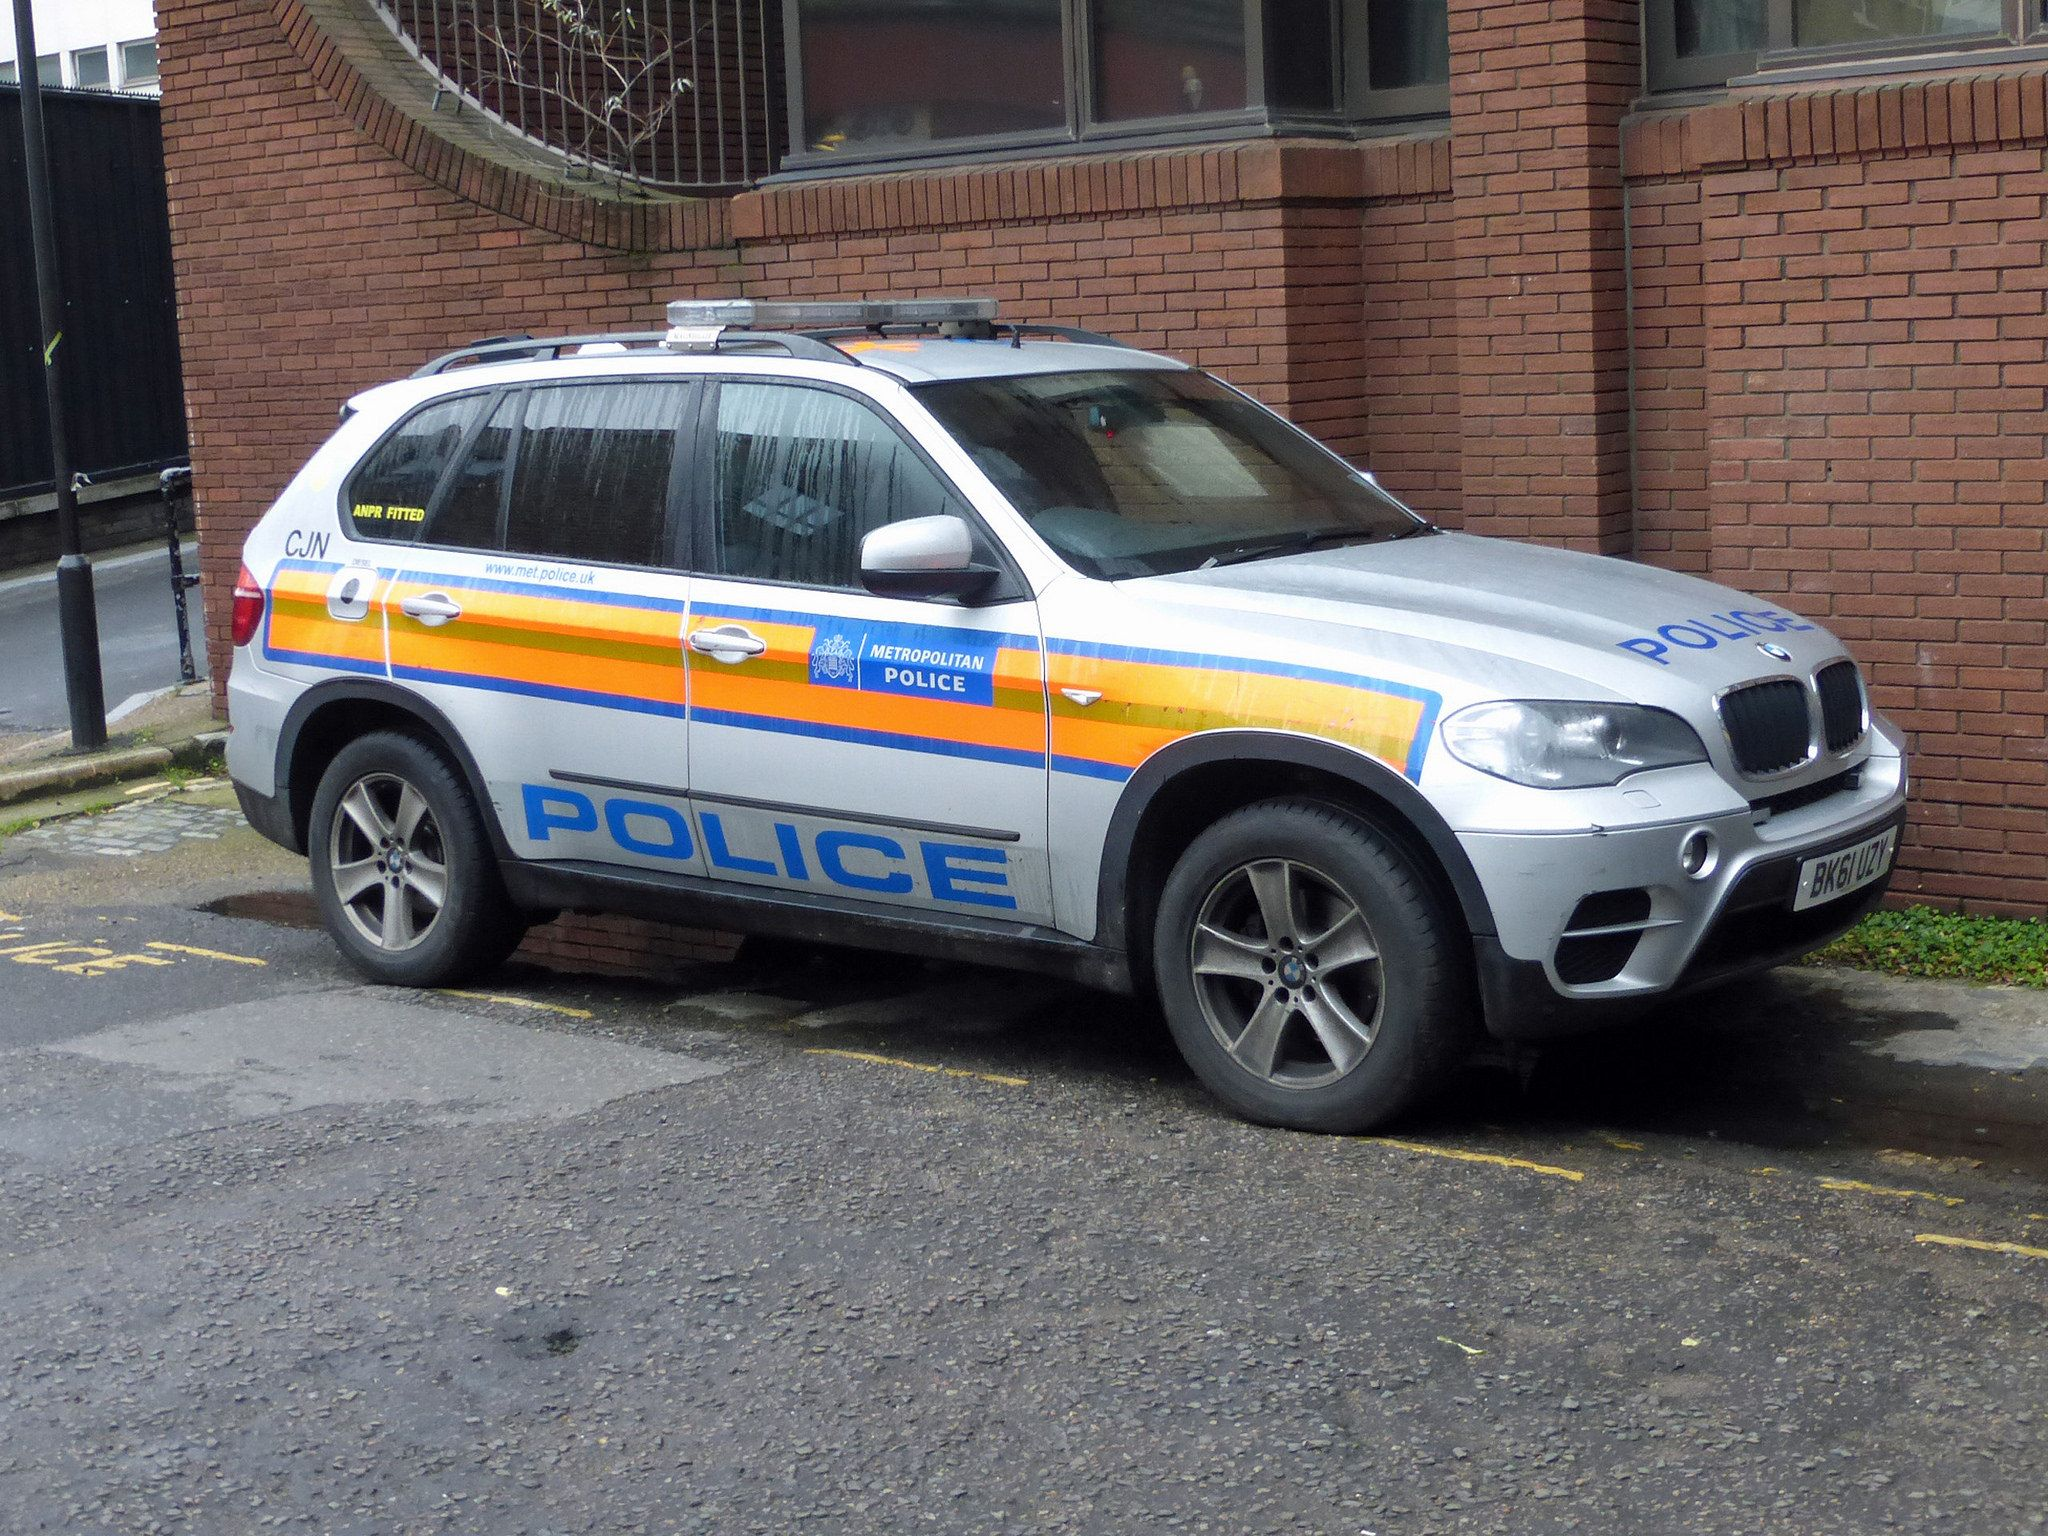 Bx61 Uzy Police Cars British Police Cars Grand Theft Auto Series